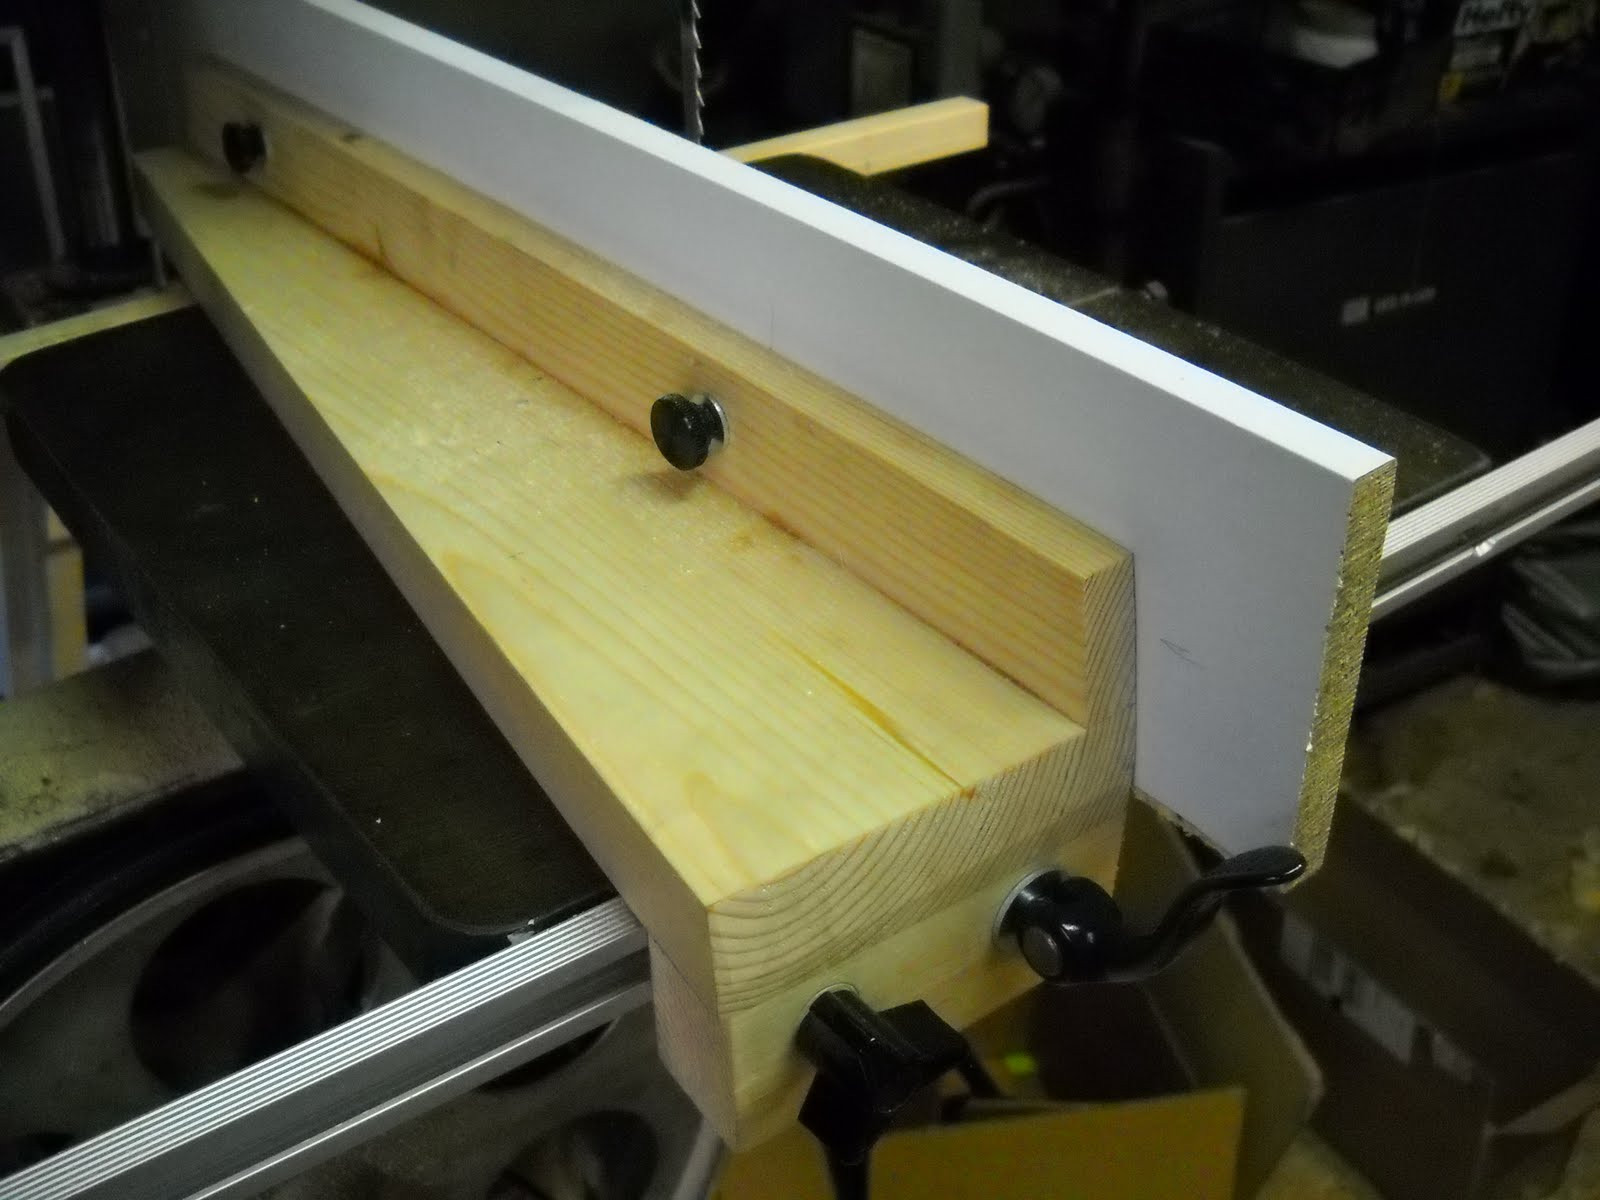 Best ideas about DIY Bandsaw Fence . Save or Pin The Woodshop Bug Homemade Bandsaw Fence Now.